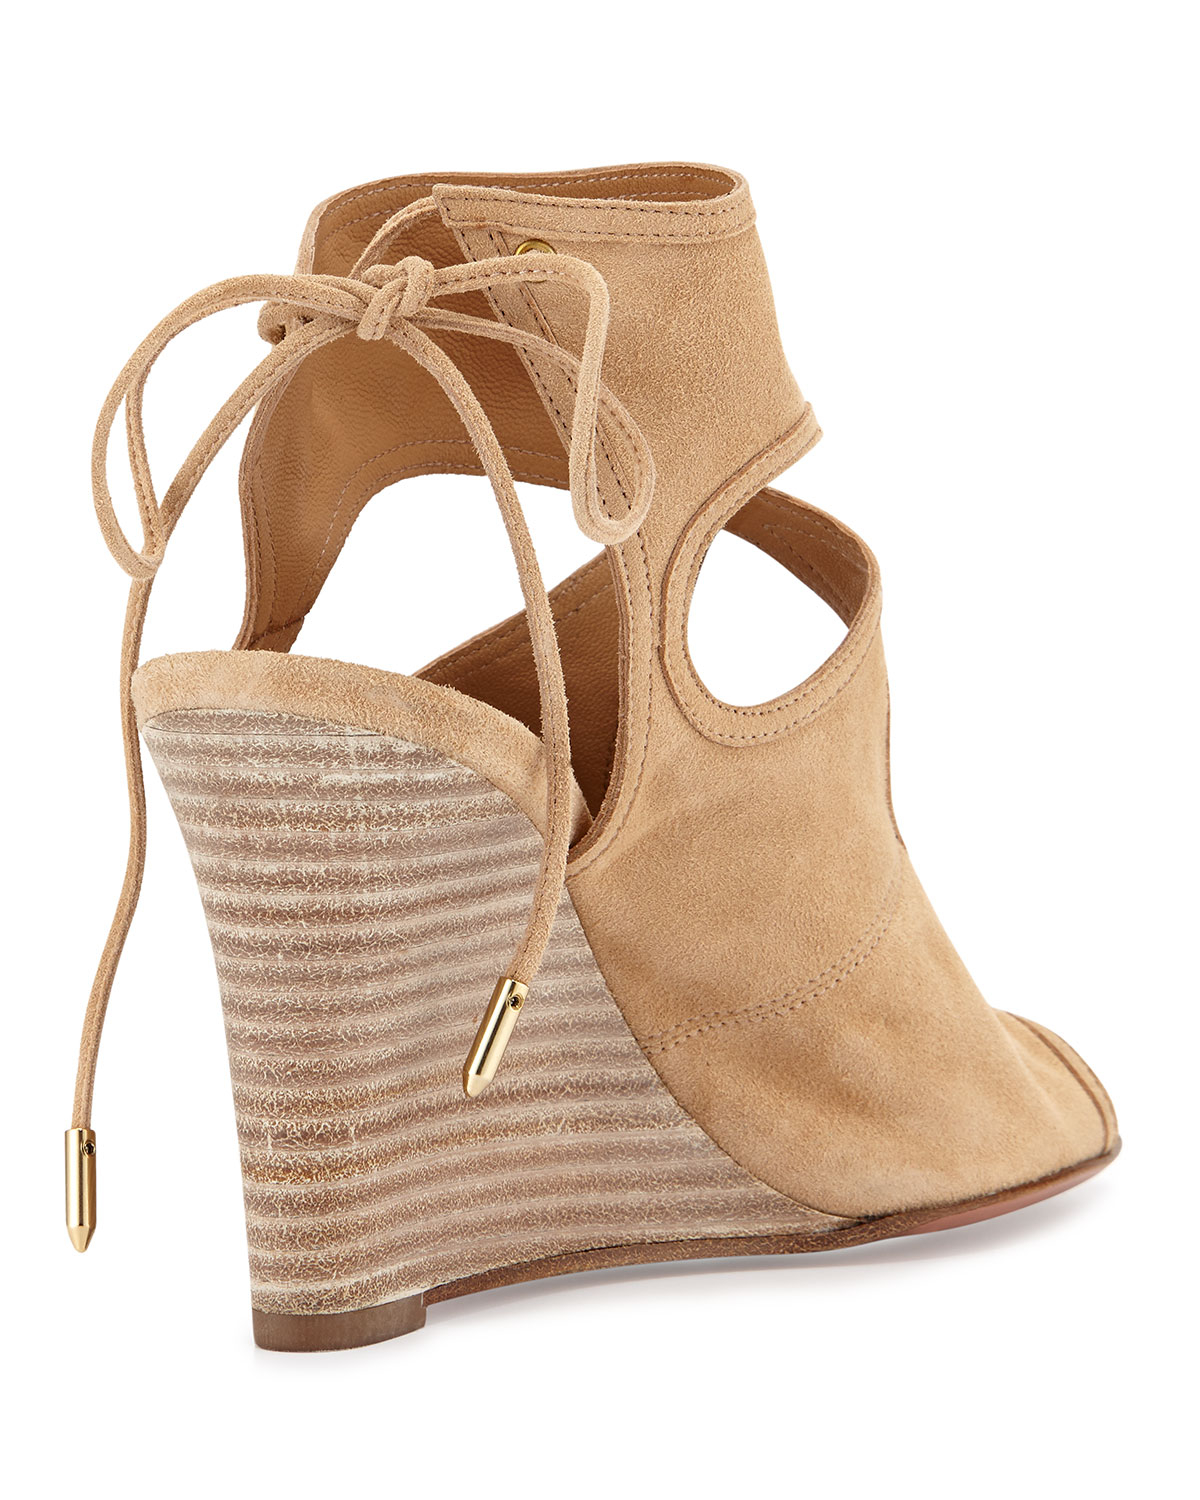 Aquazzura Sexy Thing 85 Wedges prices for sale cheap sale latest collections gTOB0HLy8P